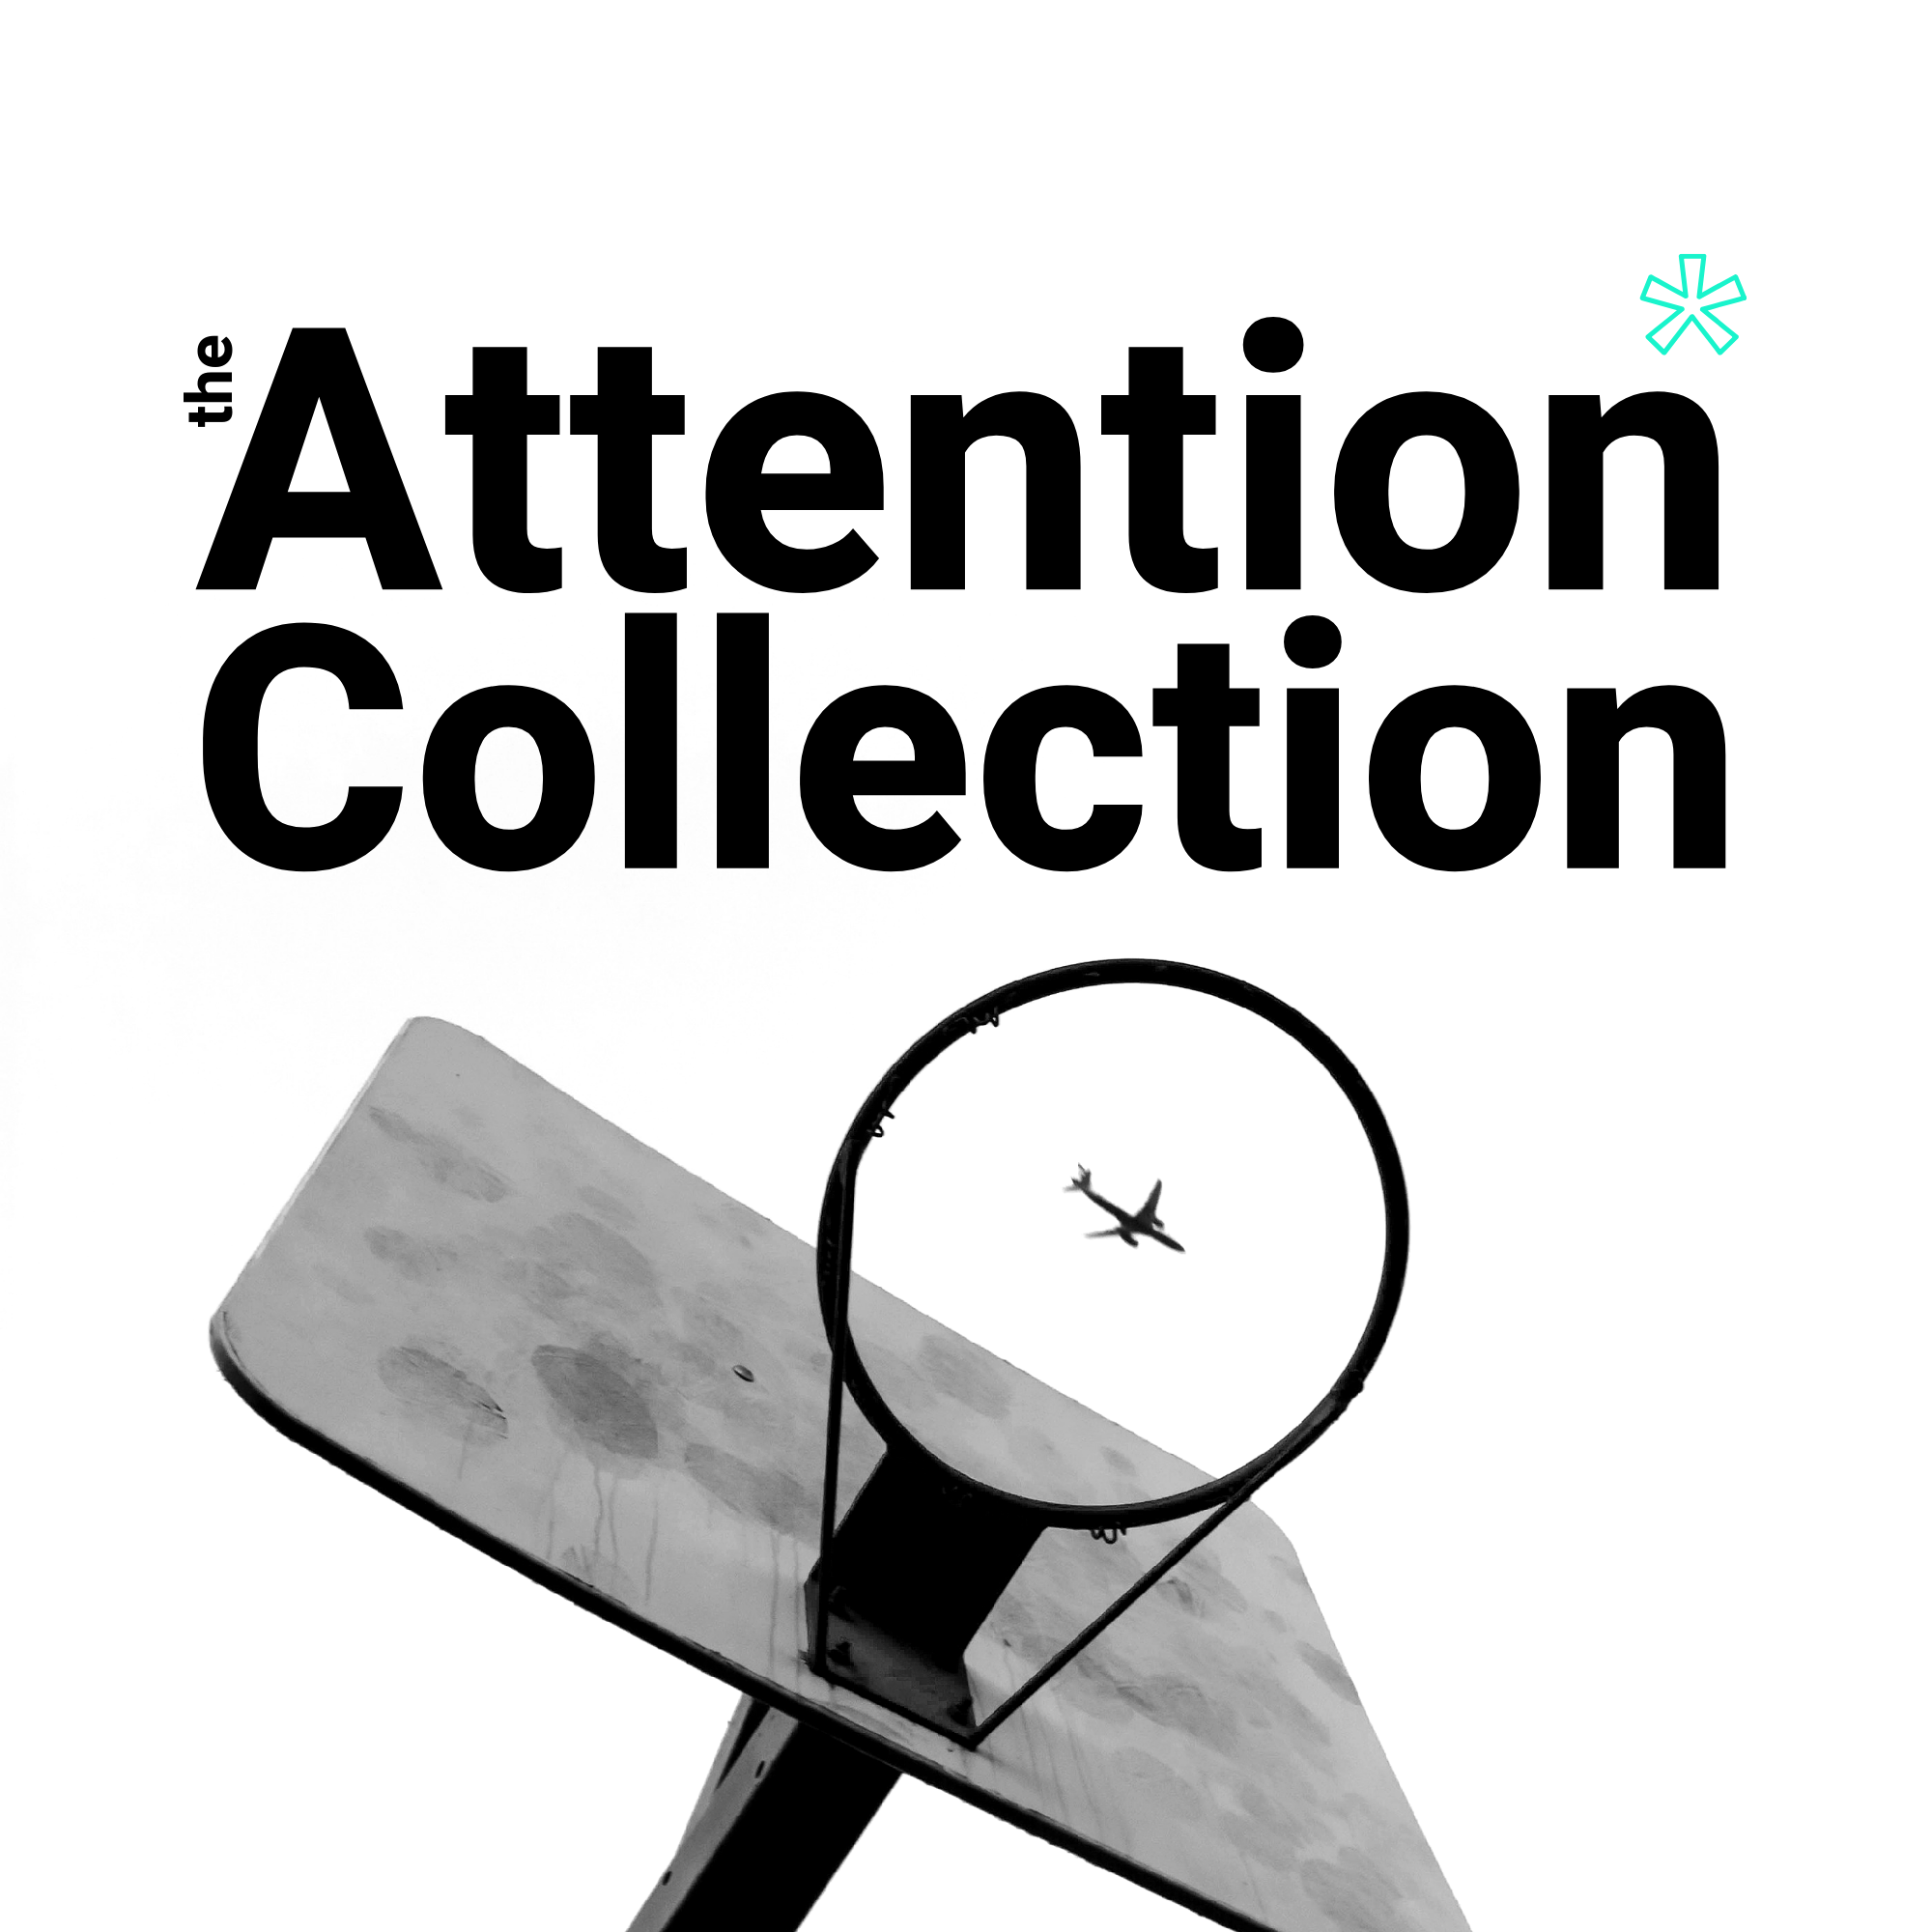 The Attention Collection